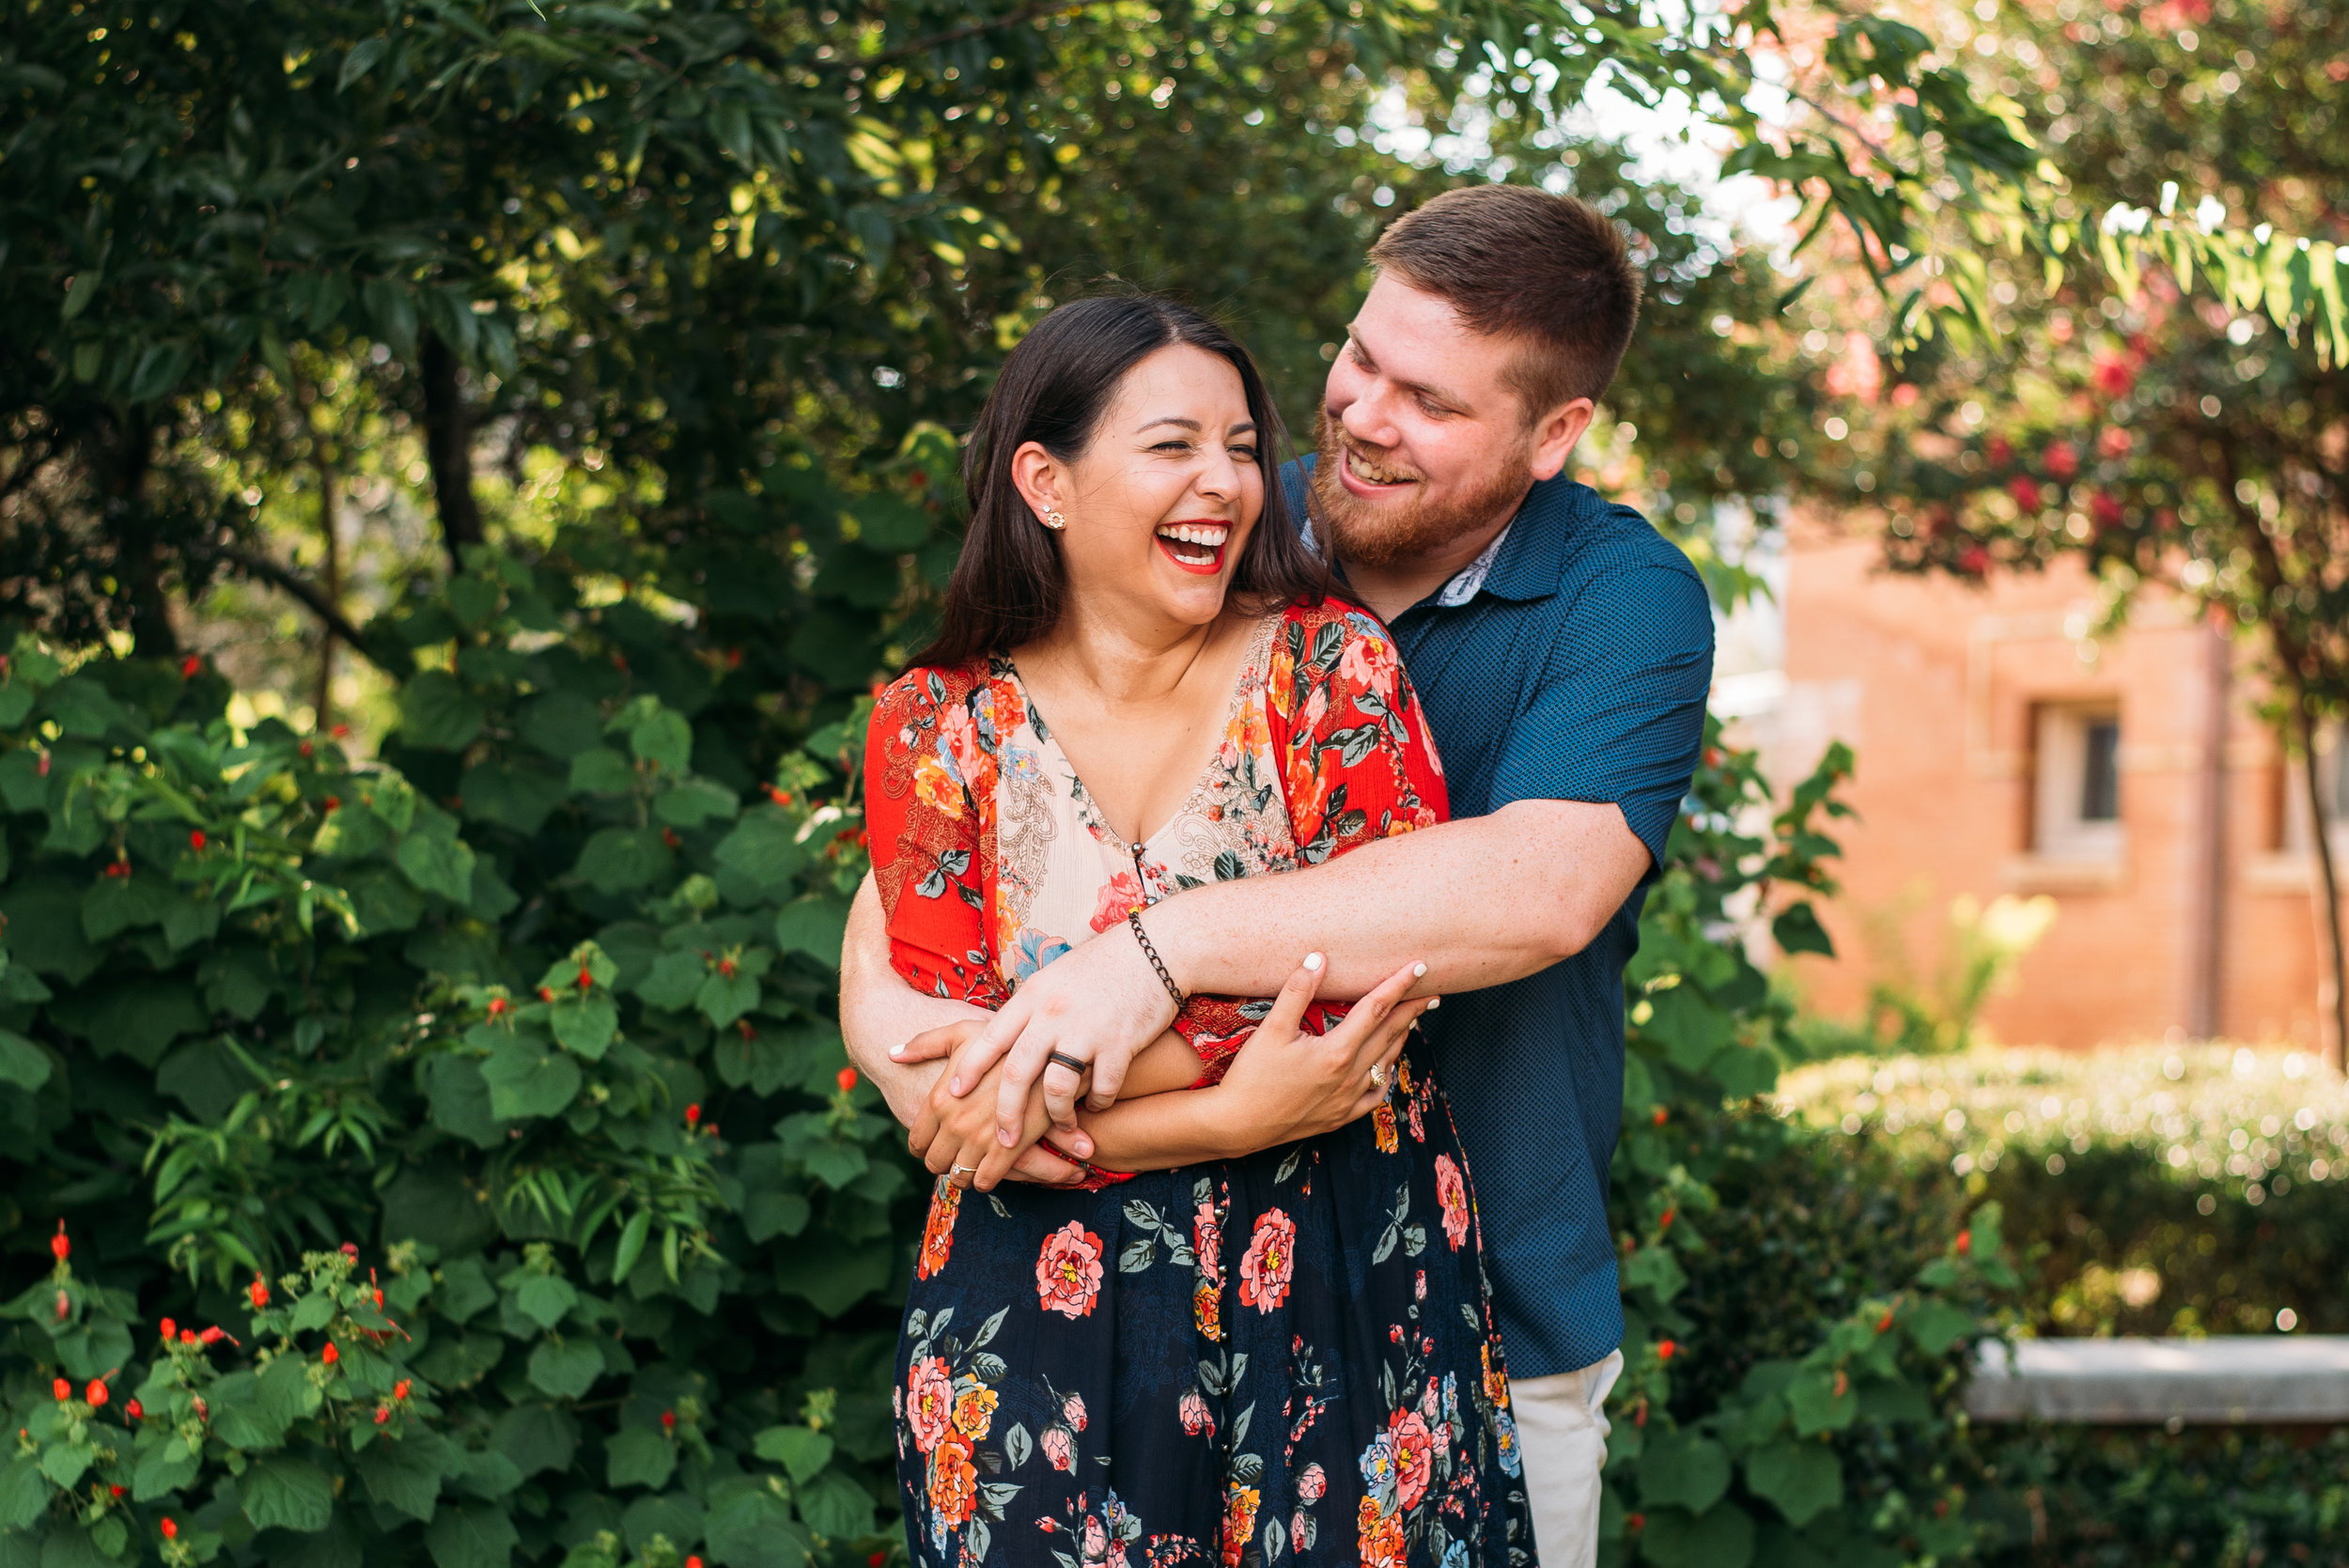 Downtown-Bryan-Engagement-George-Bush-Library-Texas-A&M-University-College-Station-Wedding-Photographer-San-Angel-Photo-Mark-Abigail-Jake-16.jpg